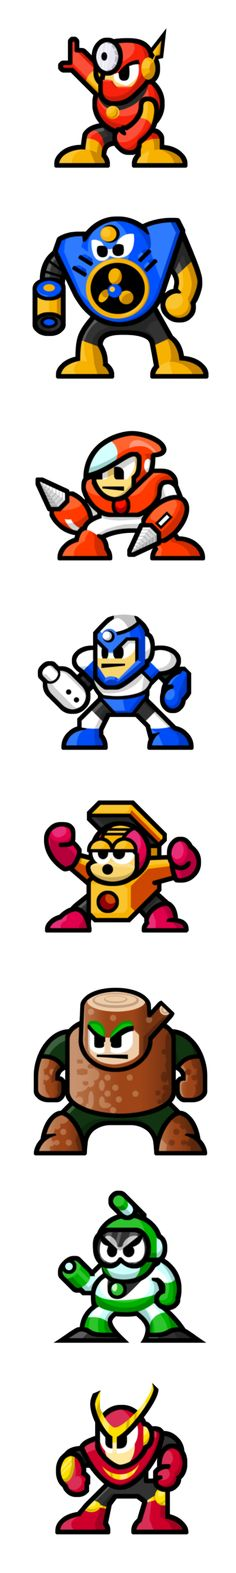 "MegaMan ""Sprites""-Bosses of 2 by WaneBlade on DeviantArt"